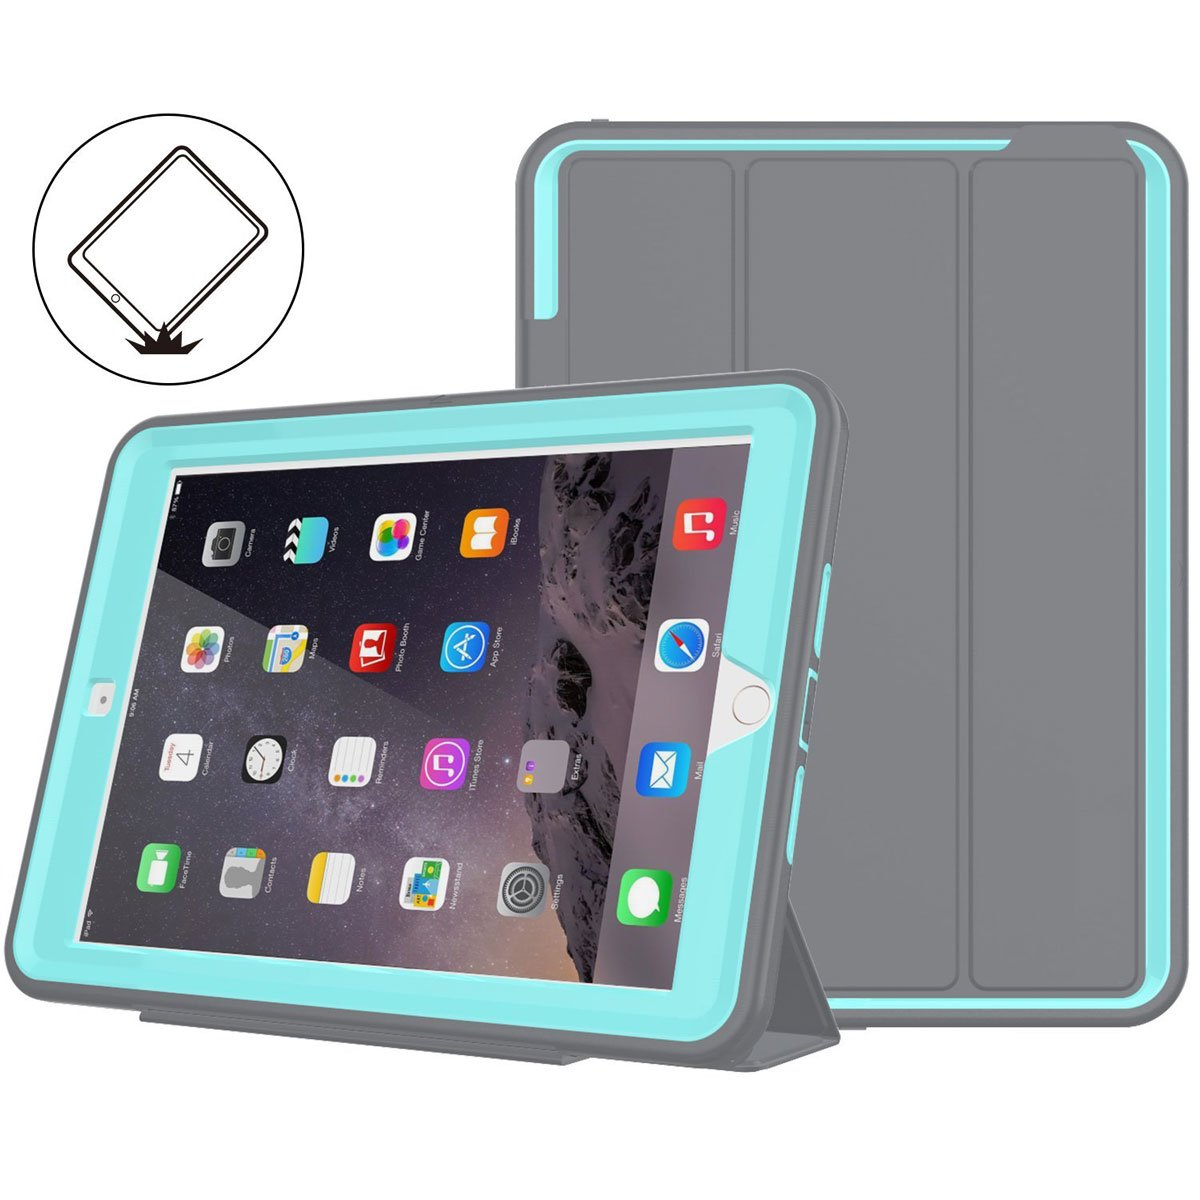 iPad 6th/5th Generation Case,iPad 9.7 Case 2018/2017,Model(A1893/A1954/A1822/A1823),with Free Screen Protector,Three Layer Heavy Duty Shockproof Protective Stand Case(Gray/Light Blue)